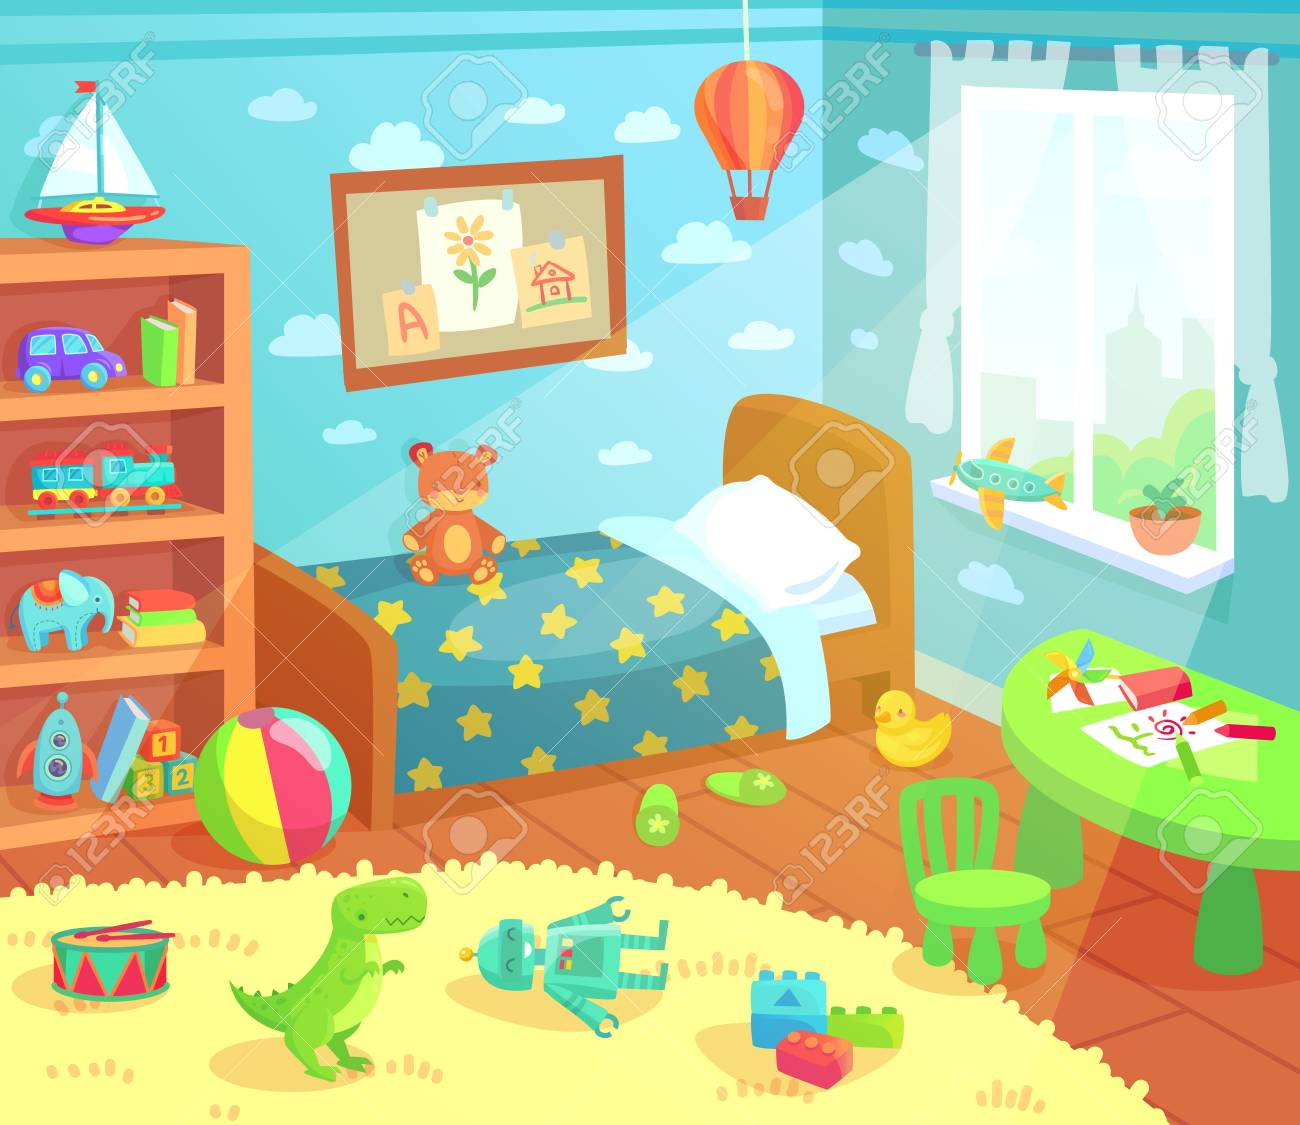 Cartoon Kids Bedroom Interior Home Childrens Room With Kid Bed